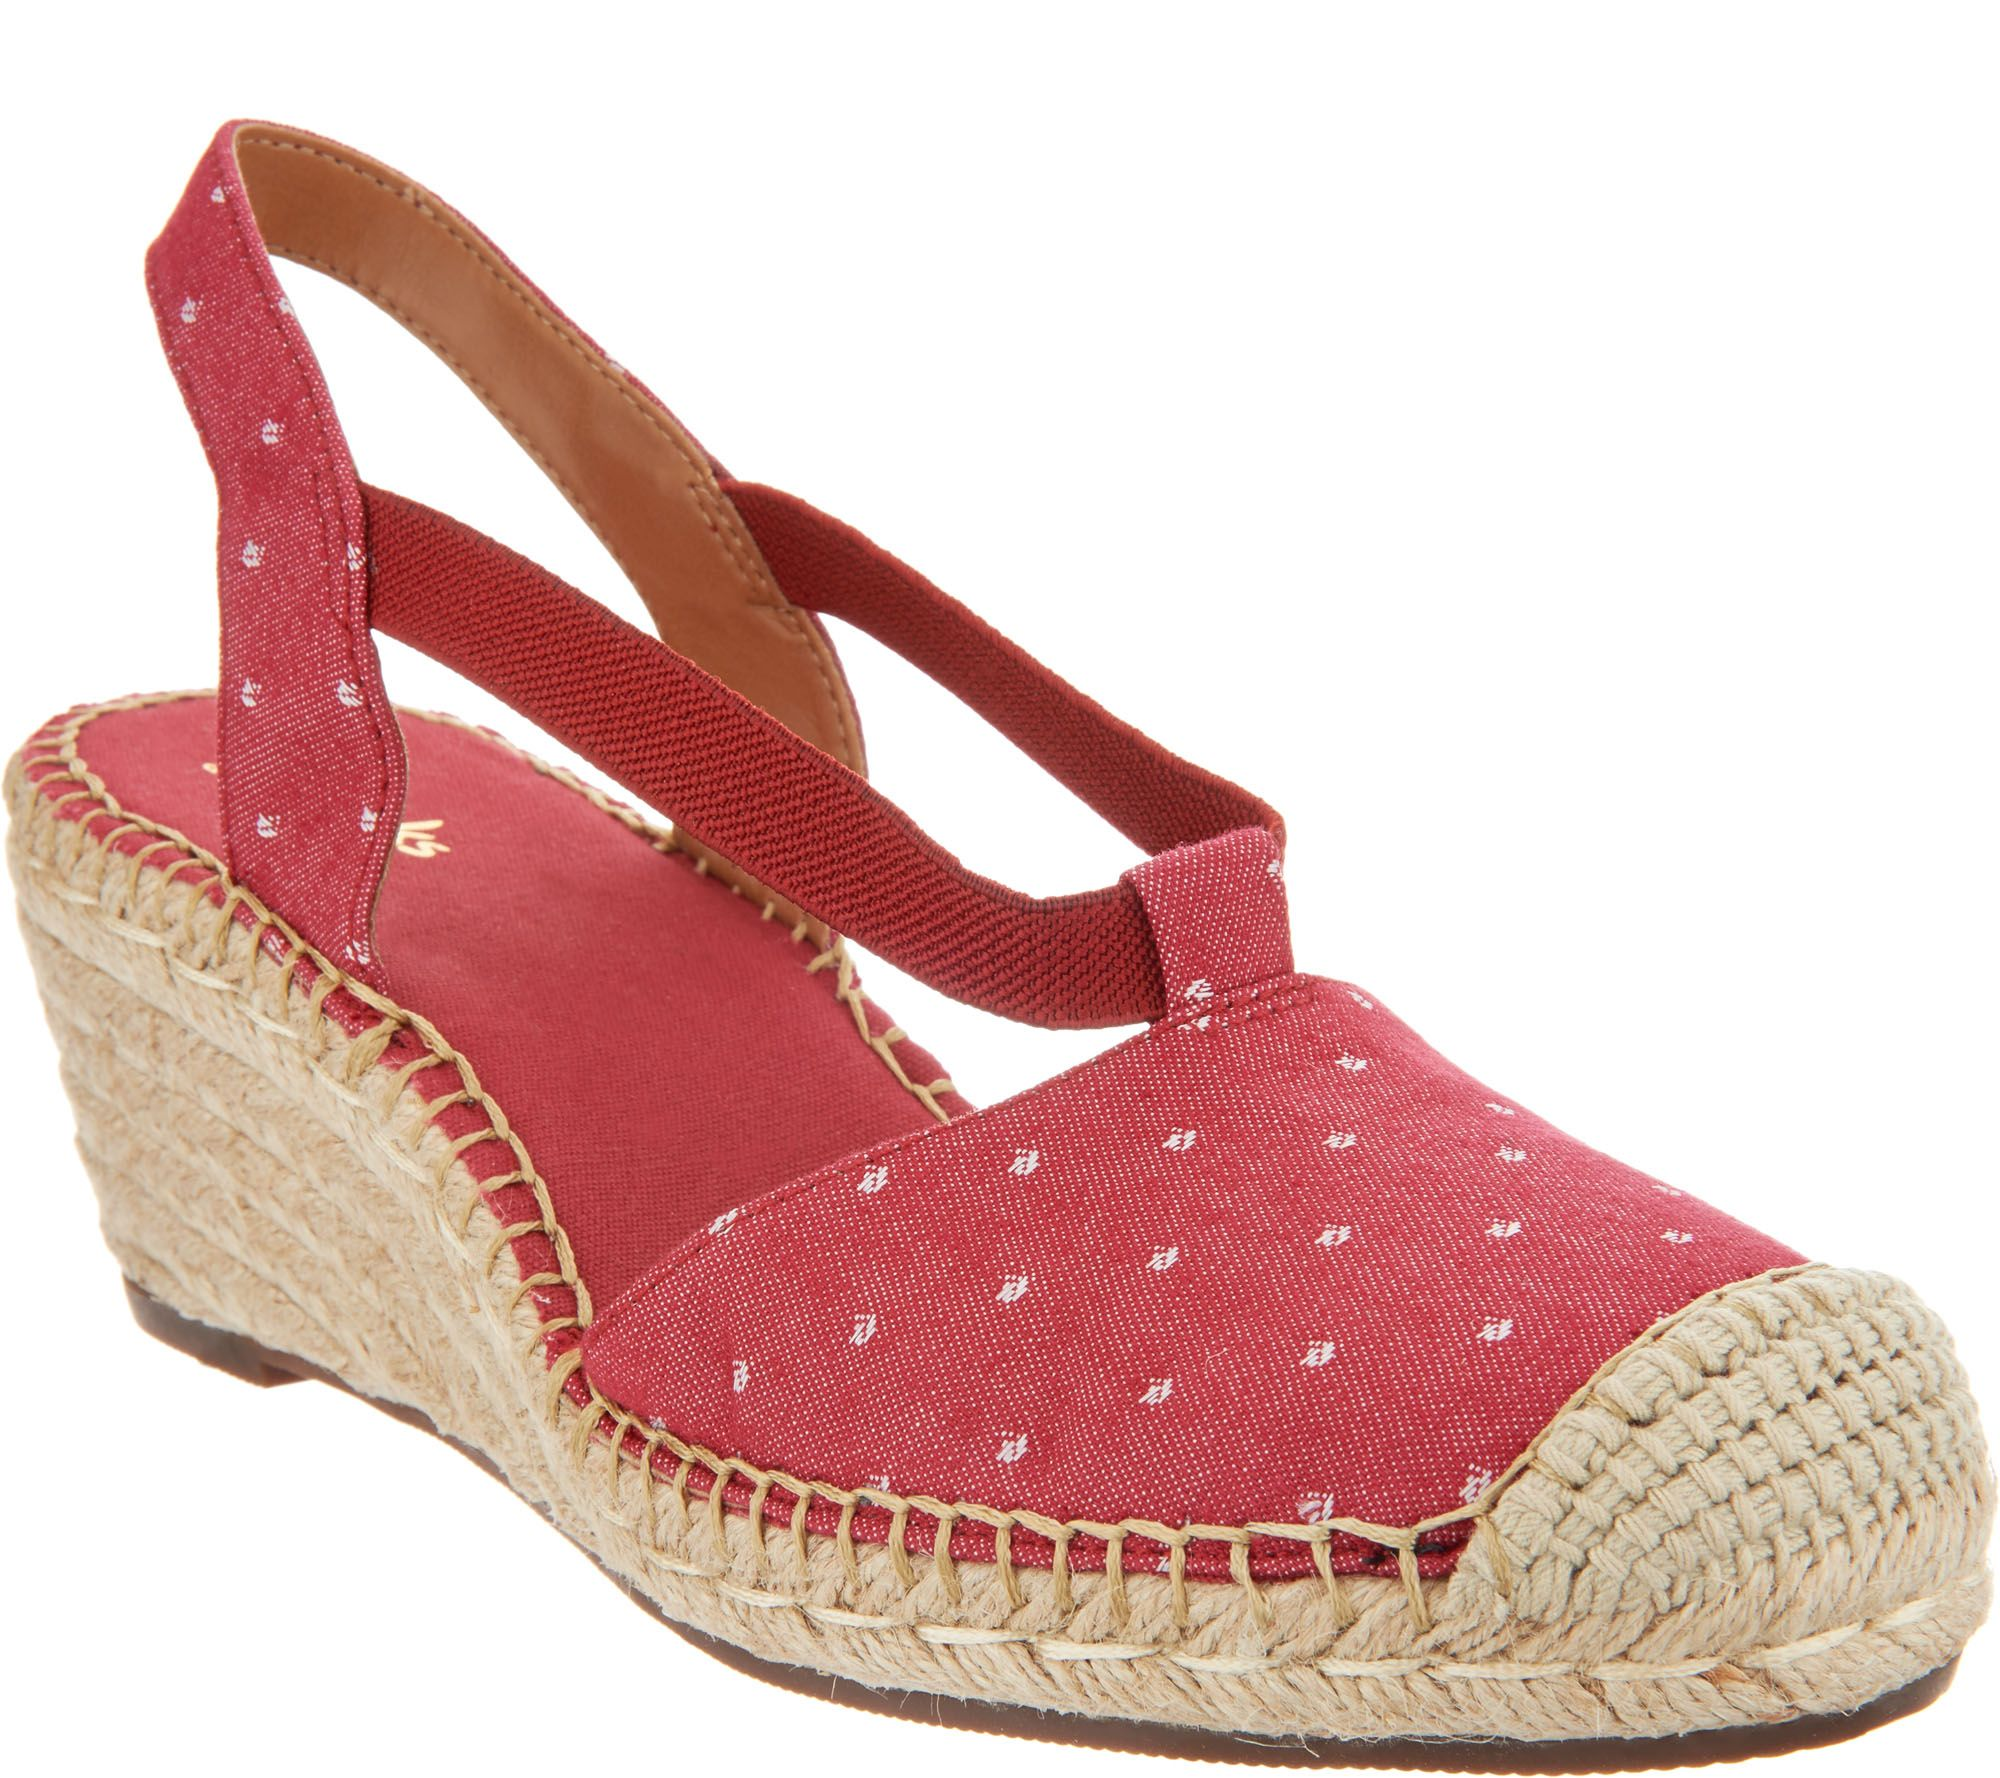 Clarks Artisan Closed Toe Espadrille Wedges Petrina